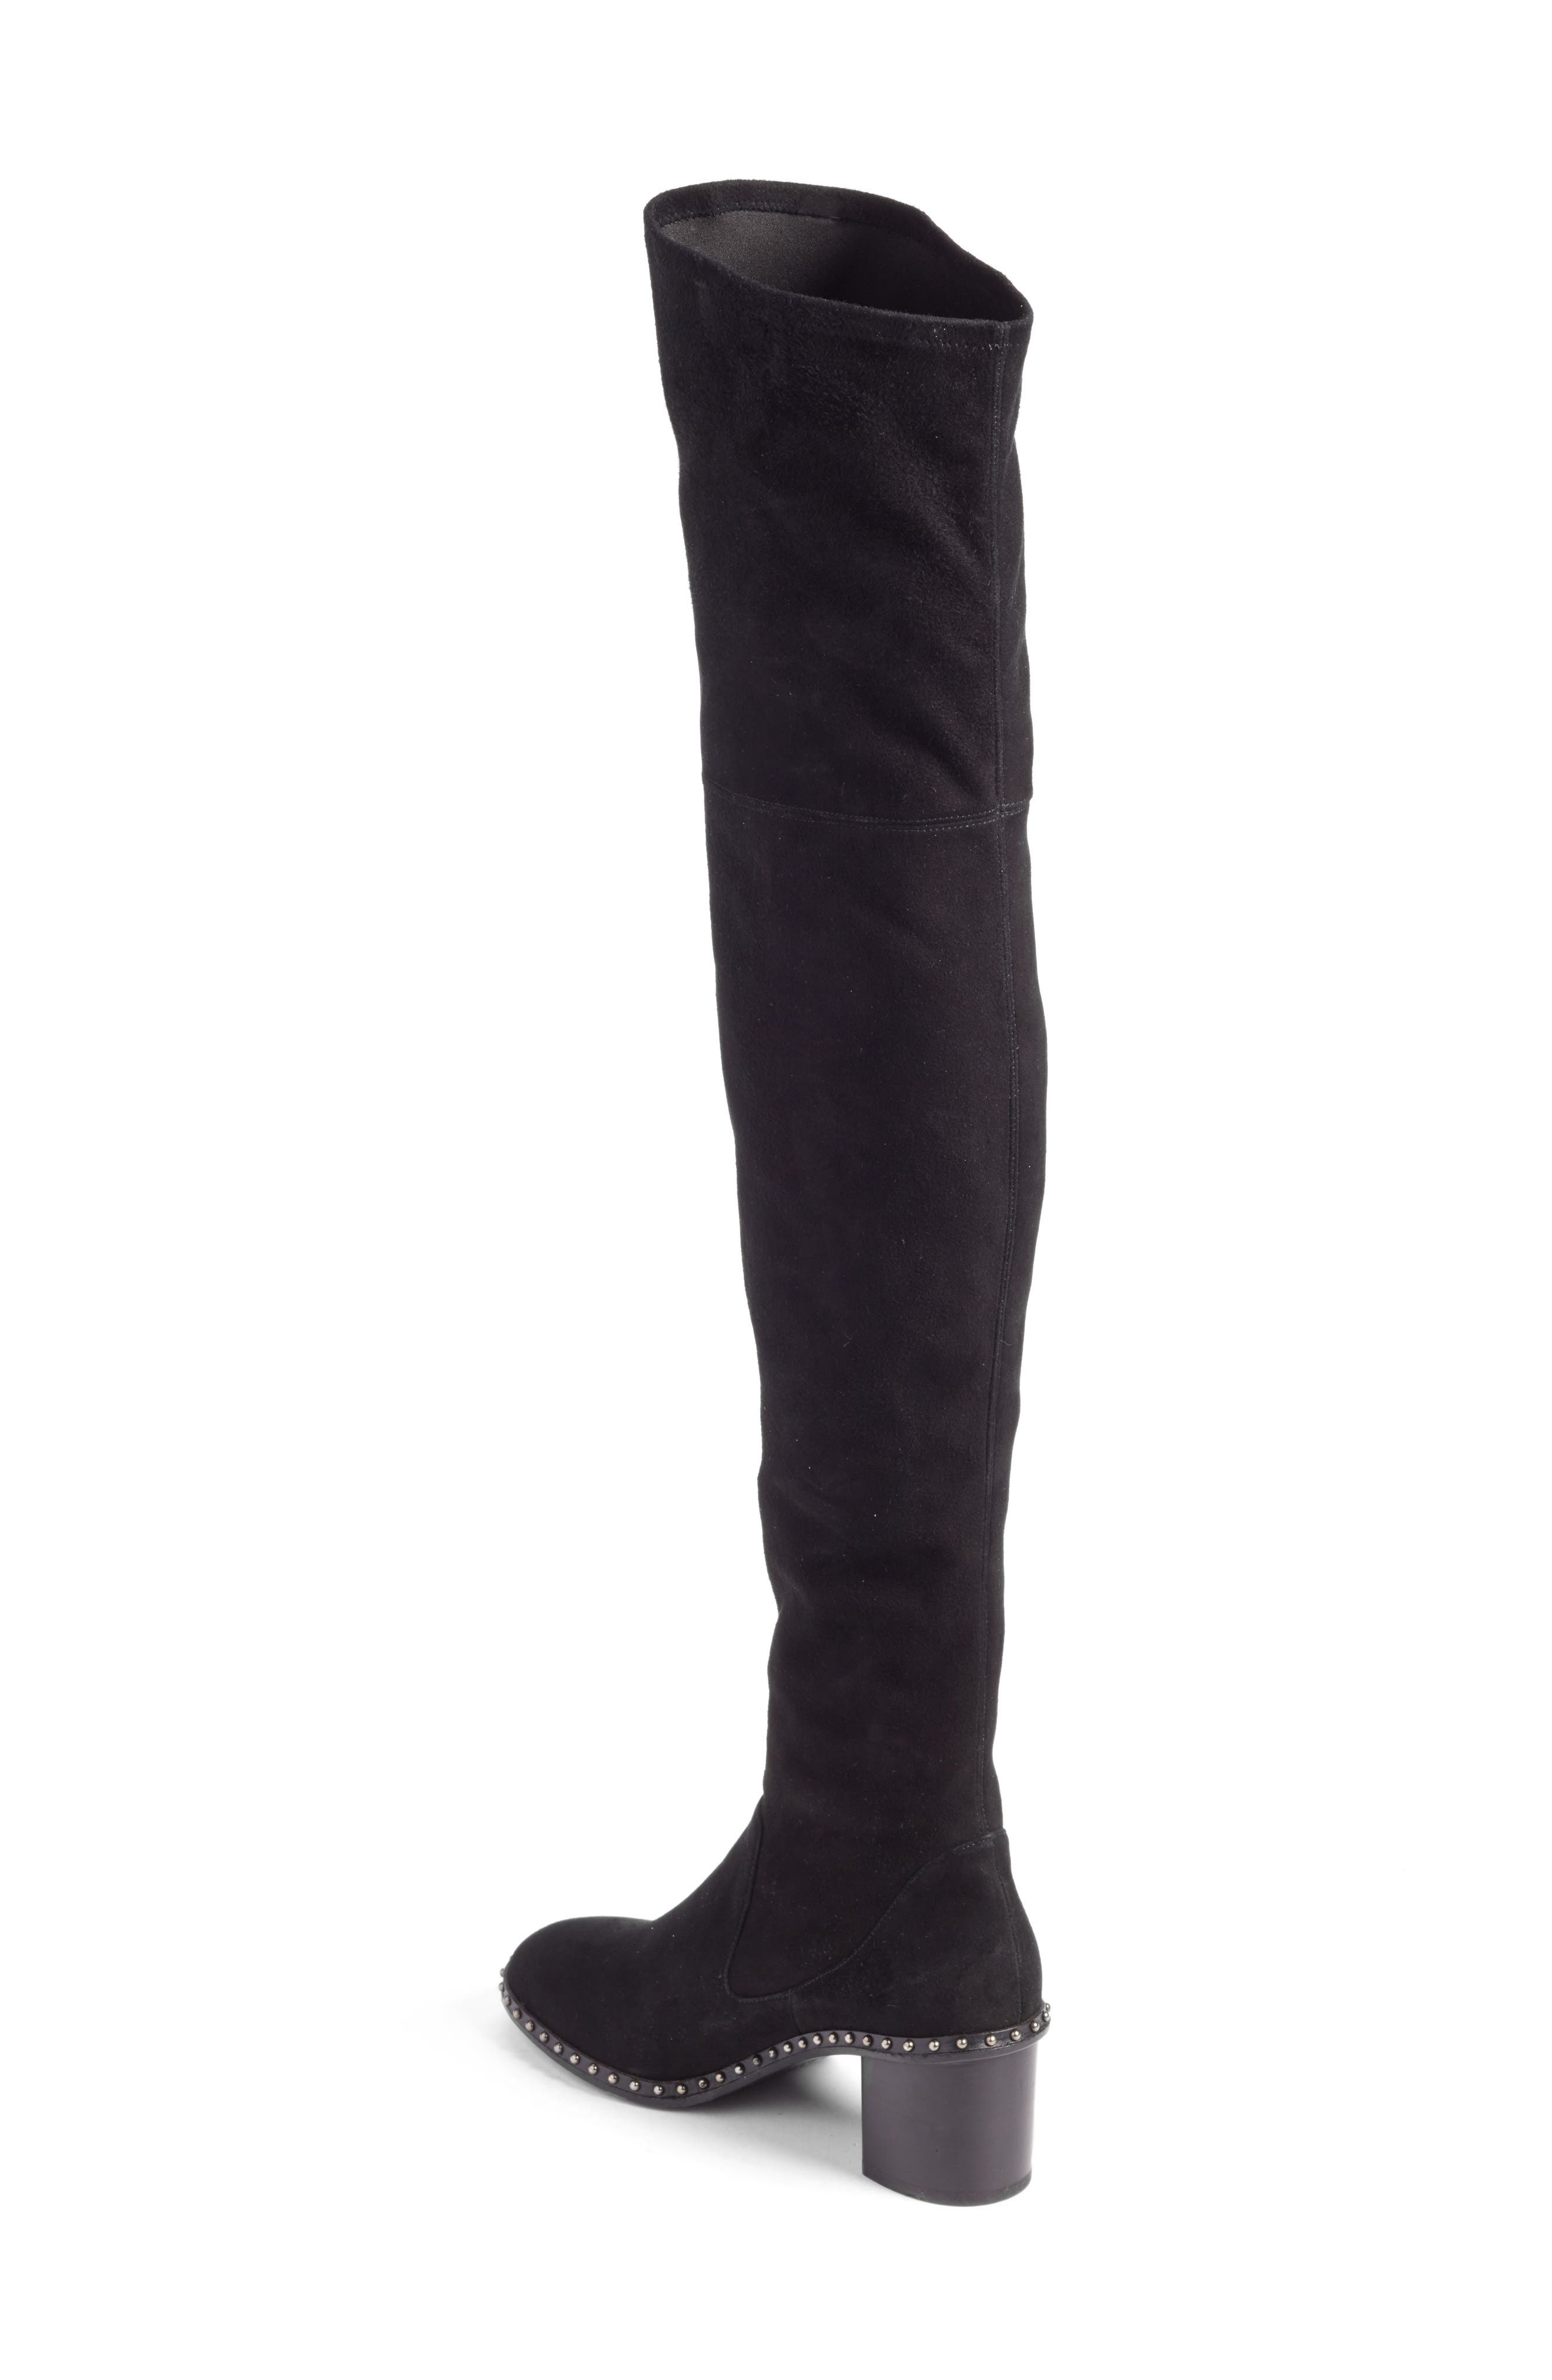 Rina Over the Knee Boot,                             Alternate thumbnail 2, color,                             008